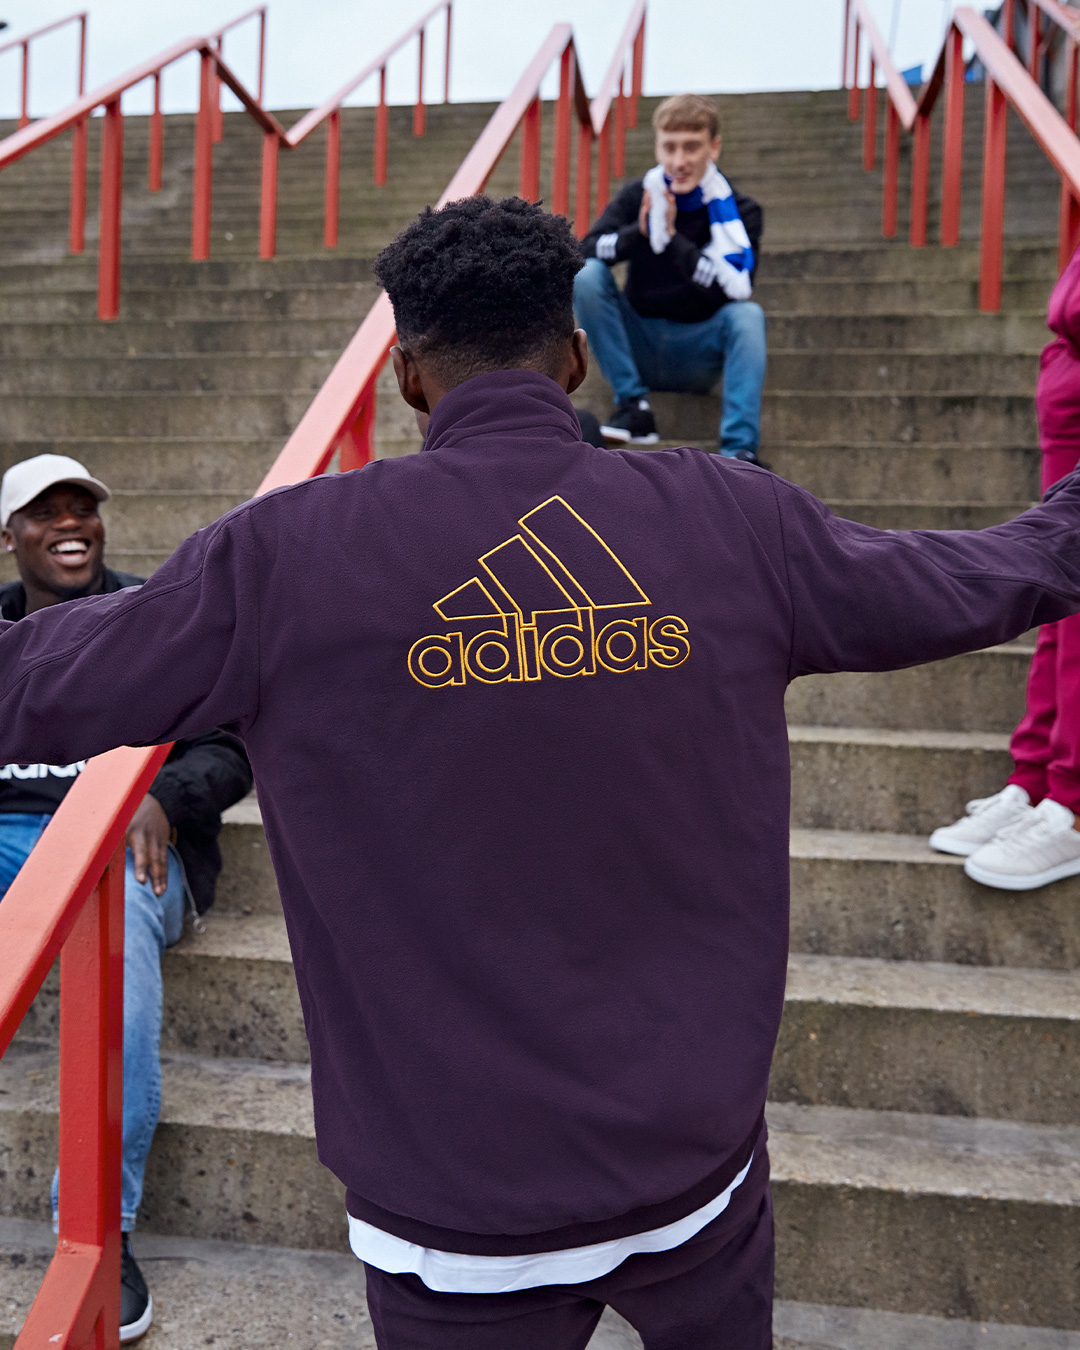 adidas-tobjizzle-supporting-image-4